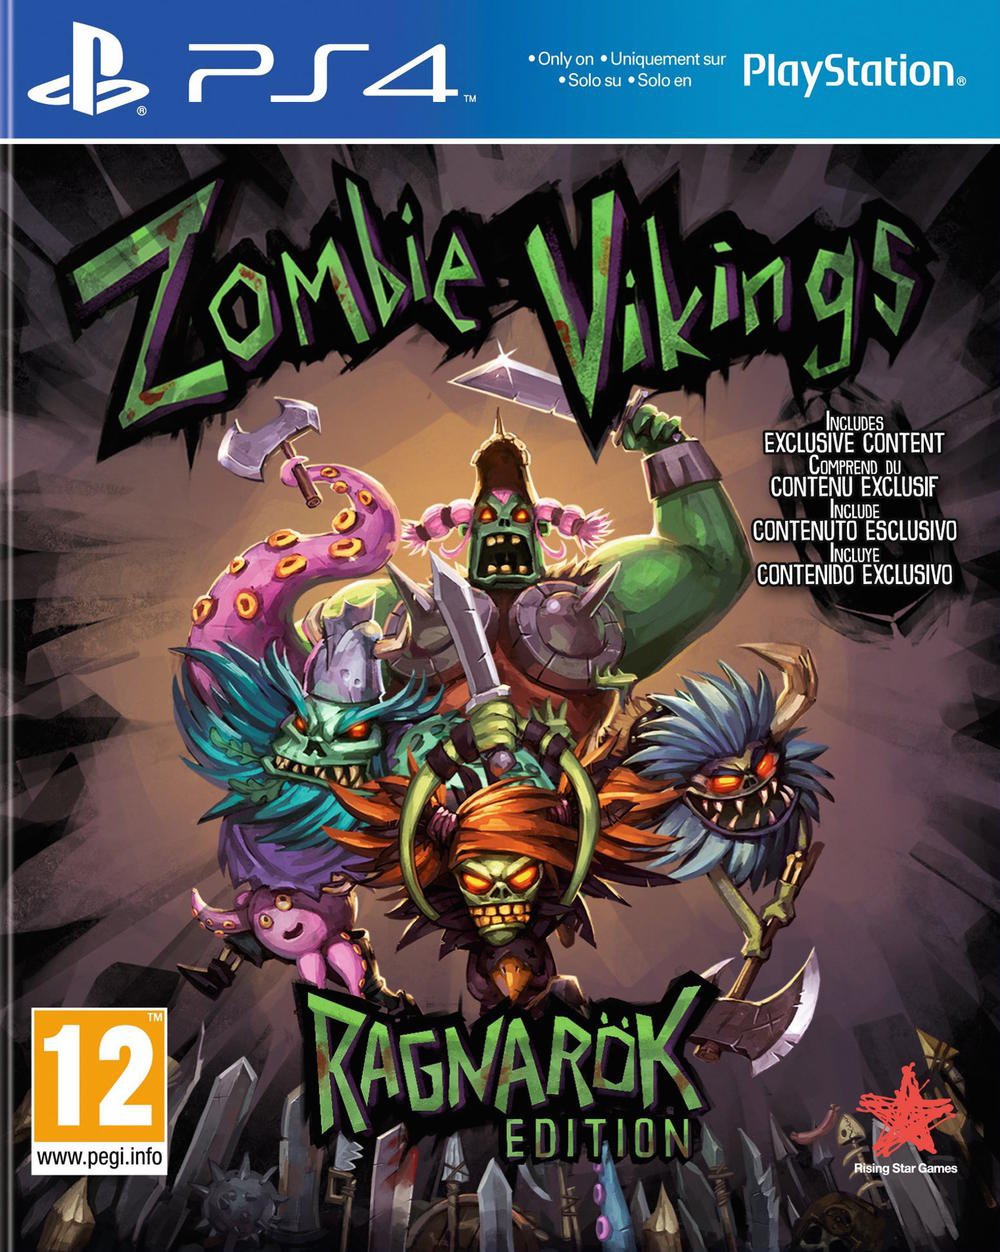 Sony Super Dungeon Bros Ps4 Playstation 4 Jeux Vido Zombie Vikings